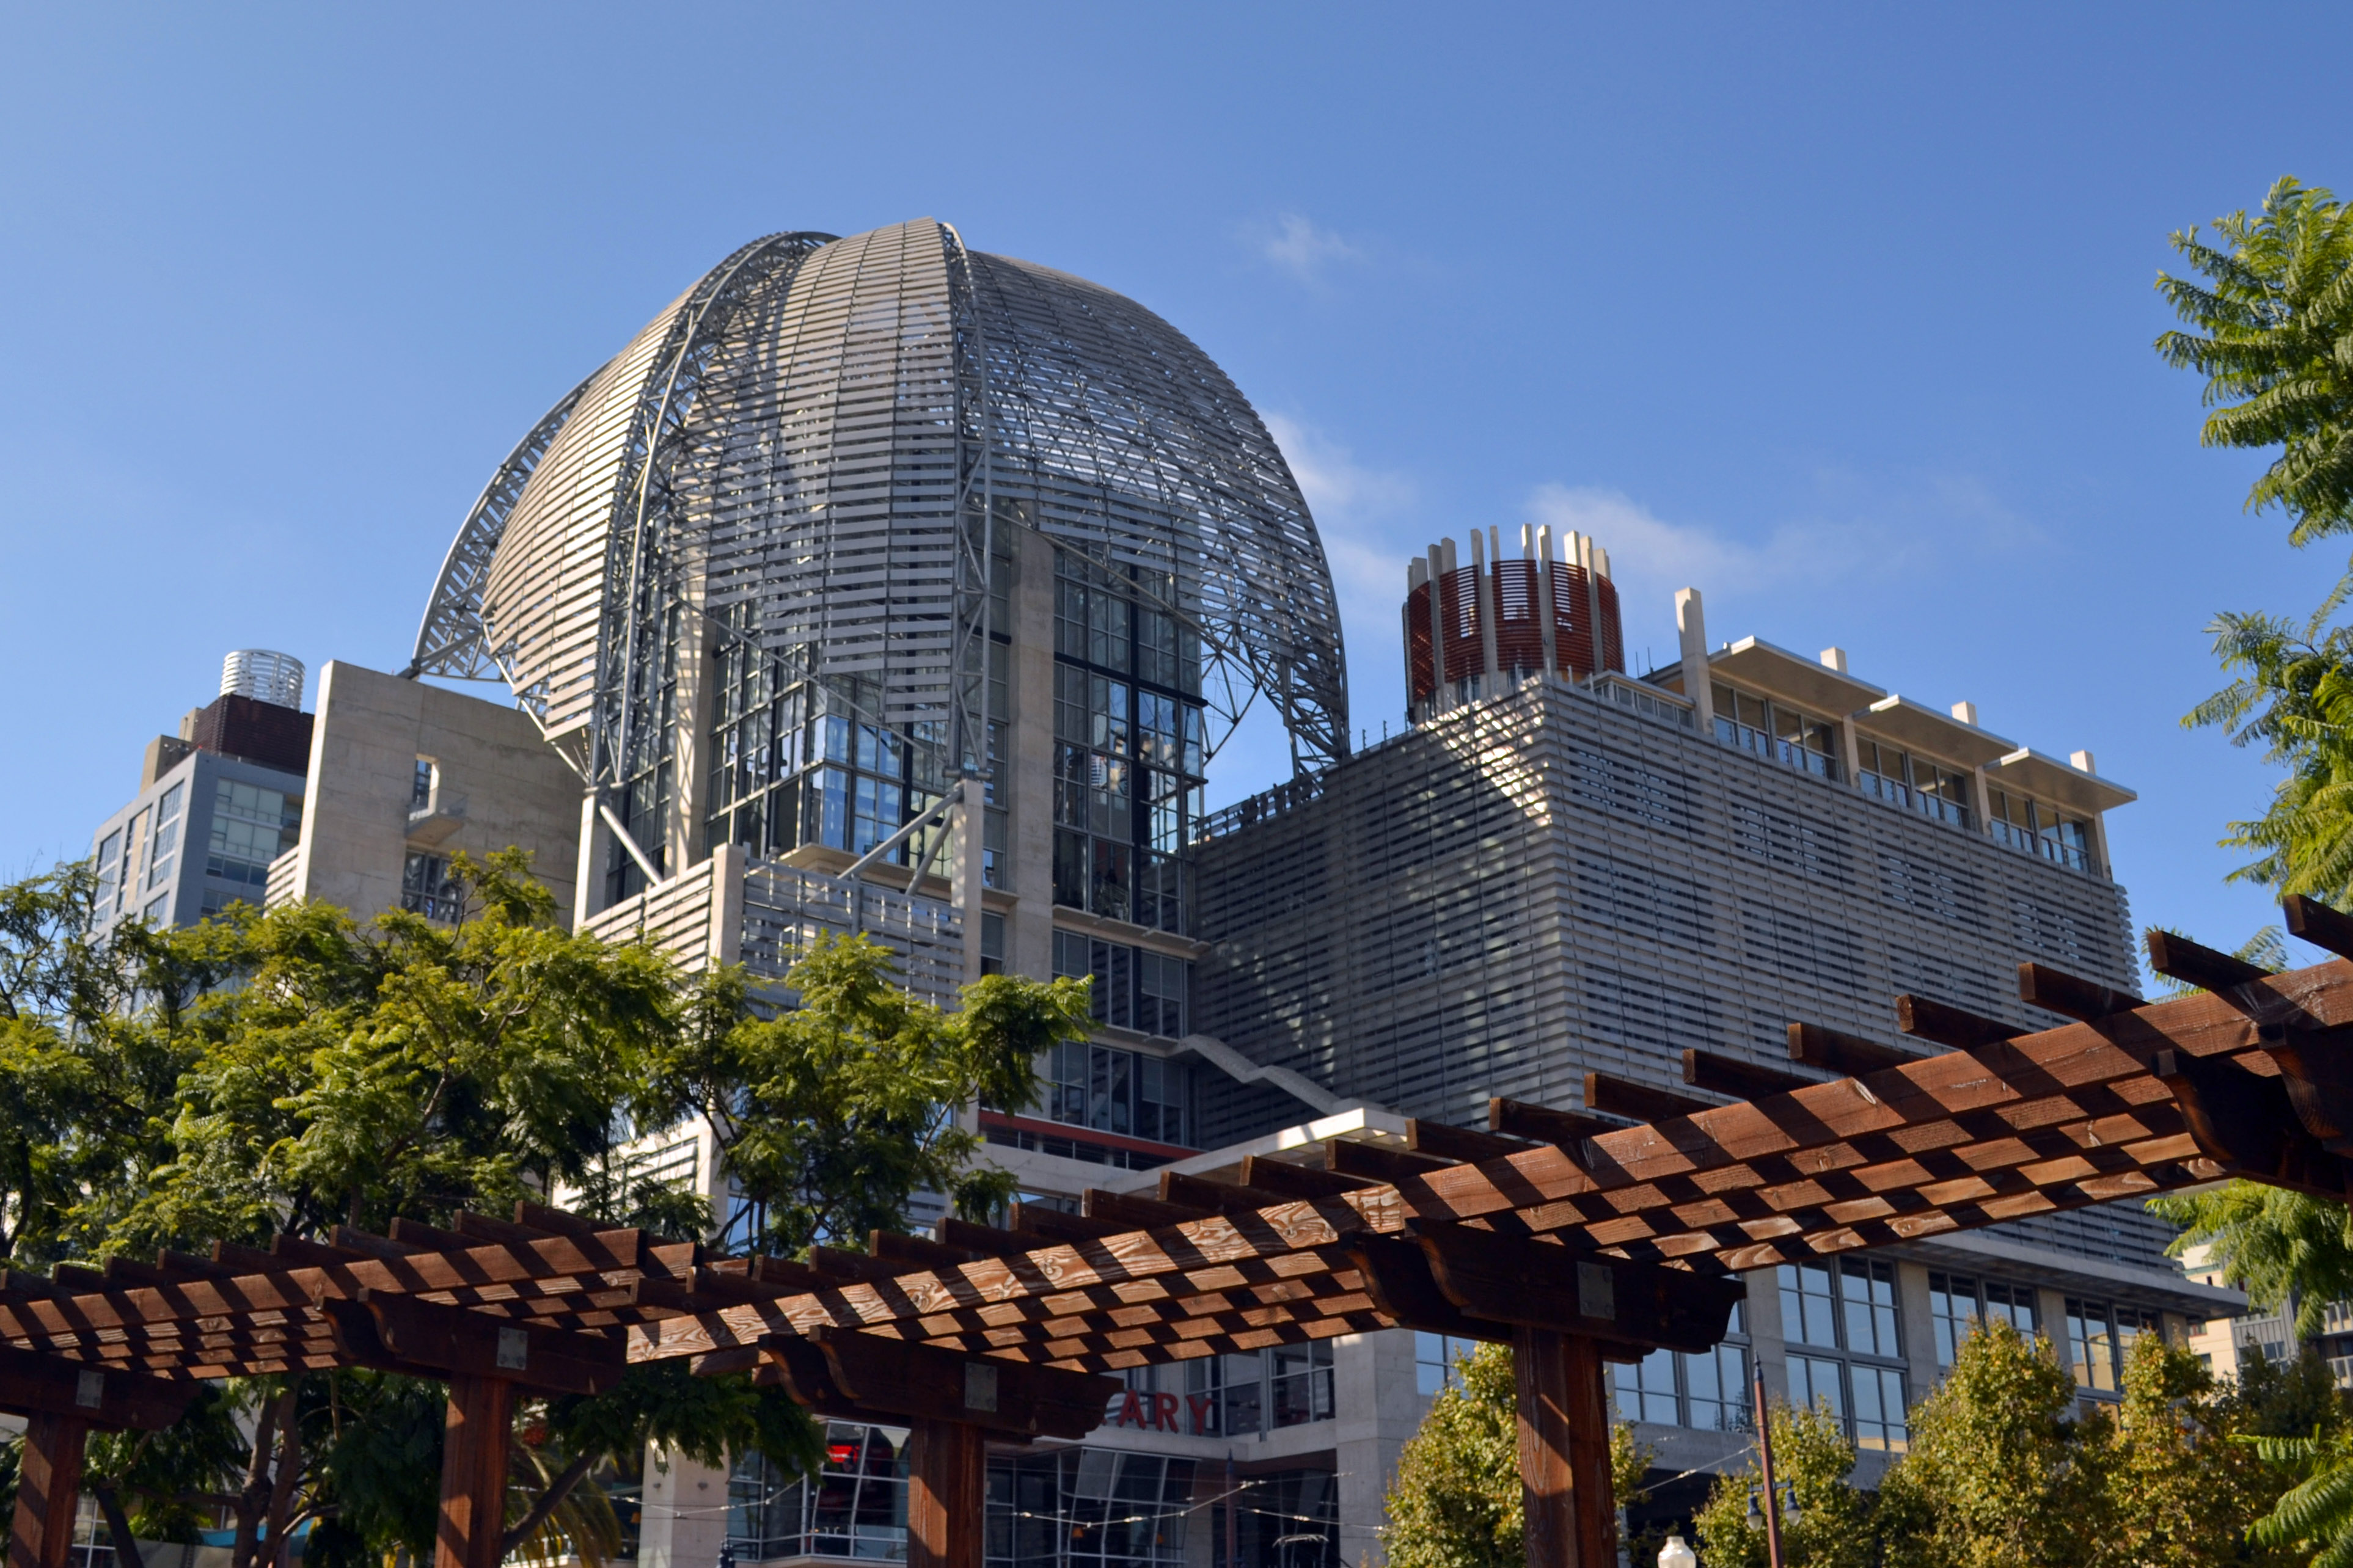 File:San Diego Central Library.jpg - Wikimedia Commons